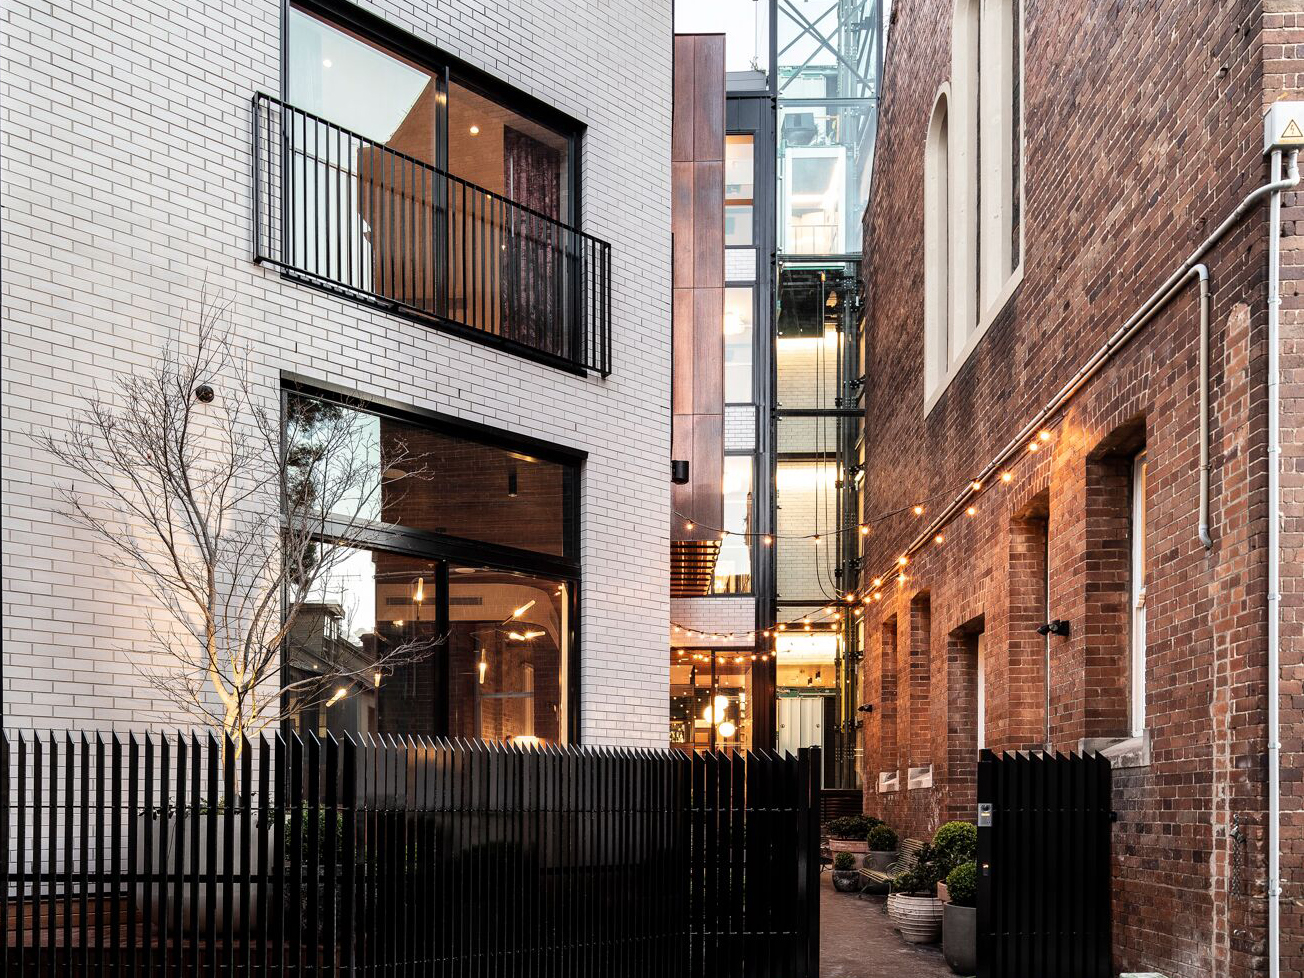 Little Albion Guest House: A microcosm of eclectic Surry Hills